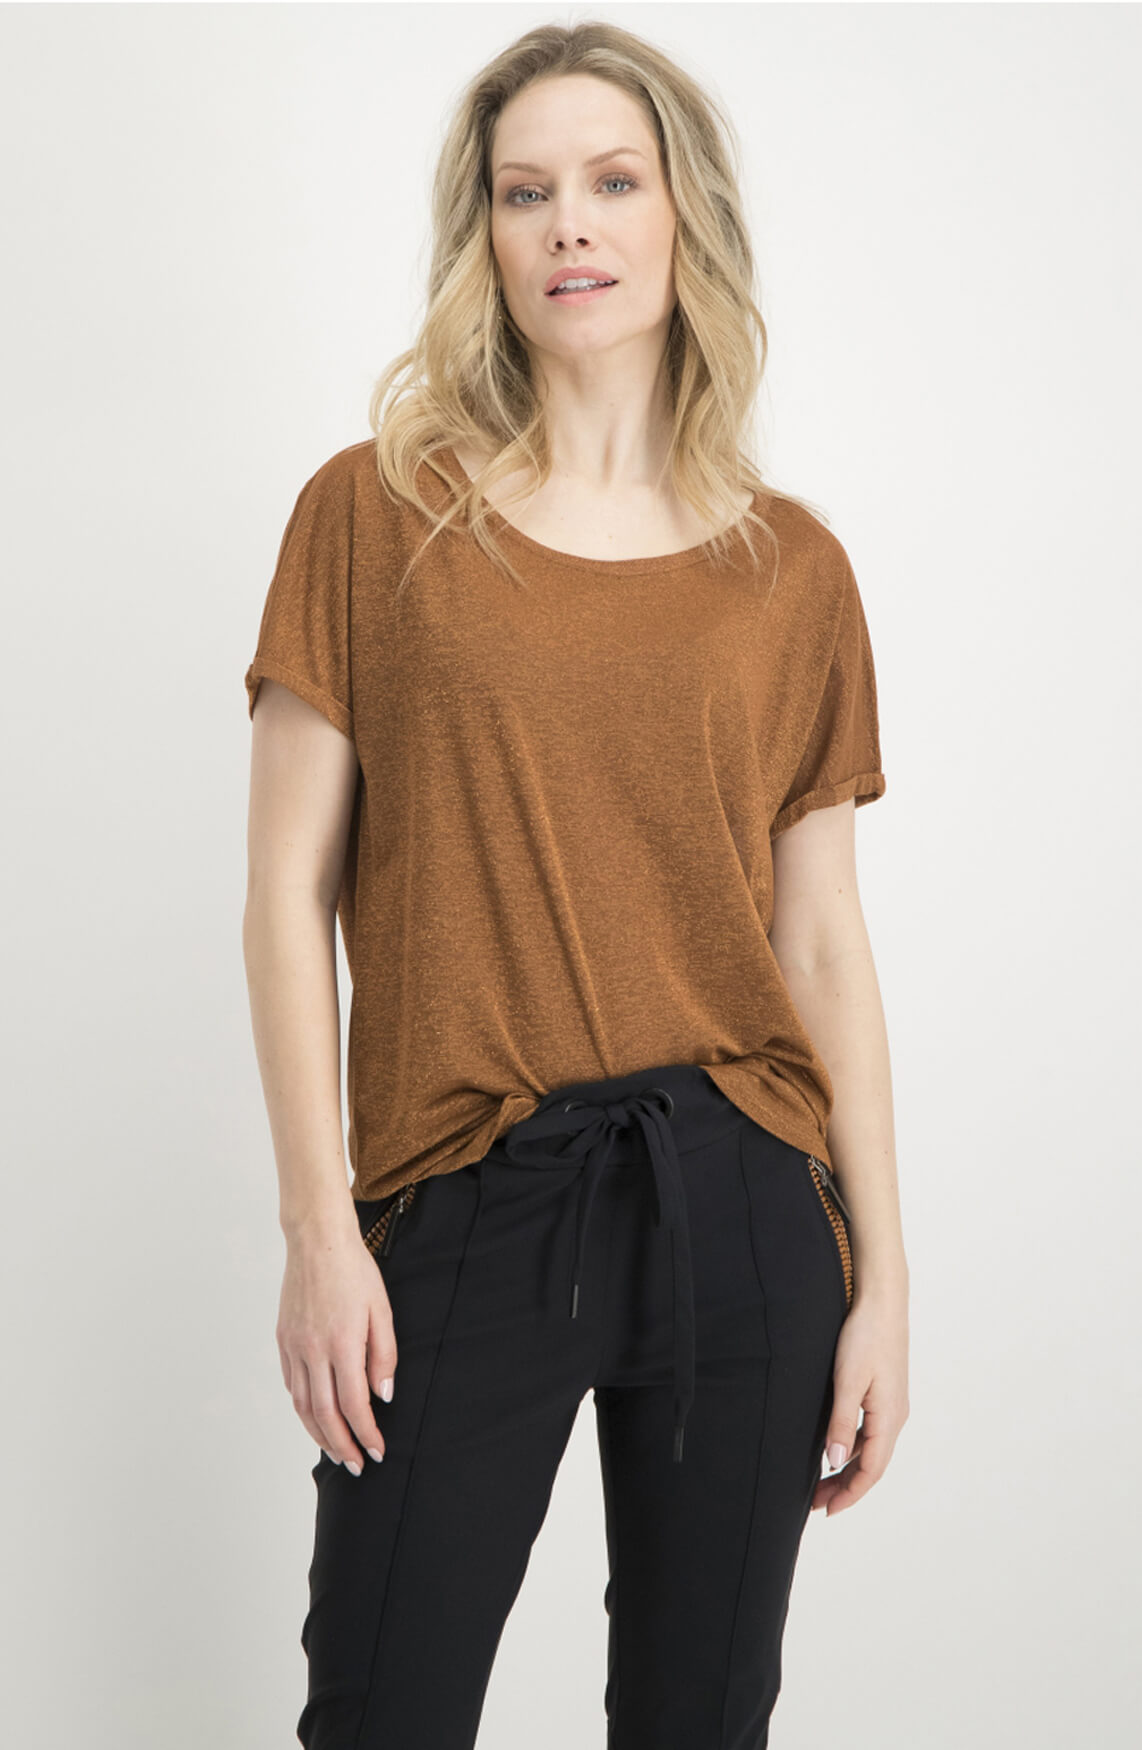 Jane Lushka Dames Hope shirt Bruin